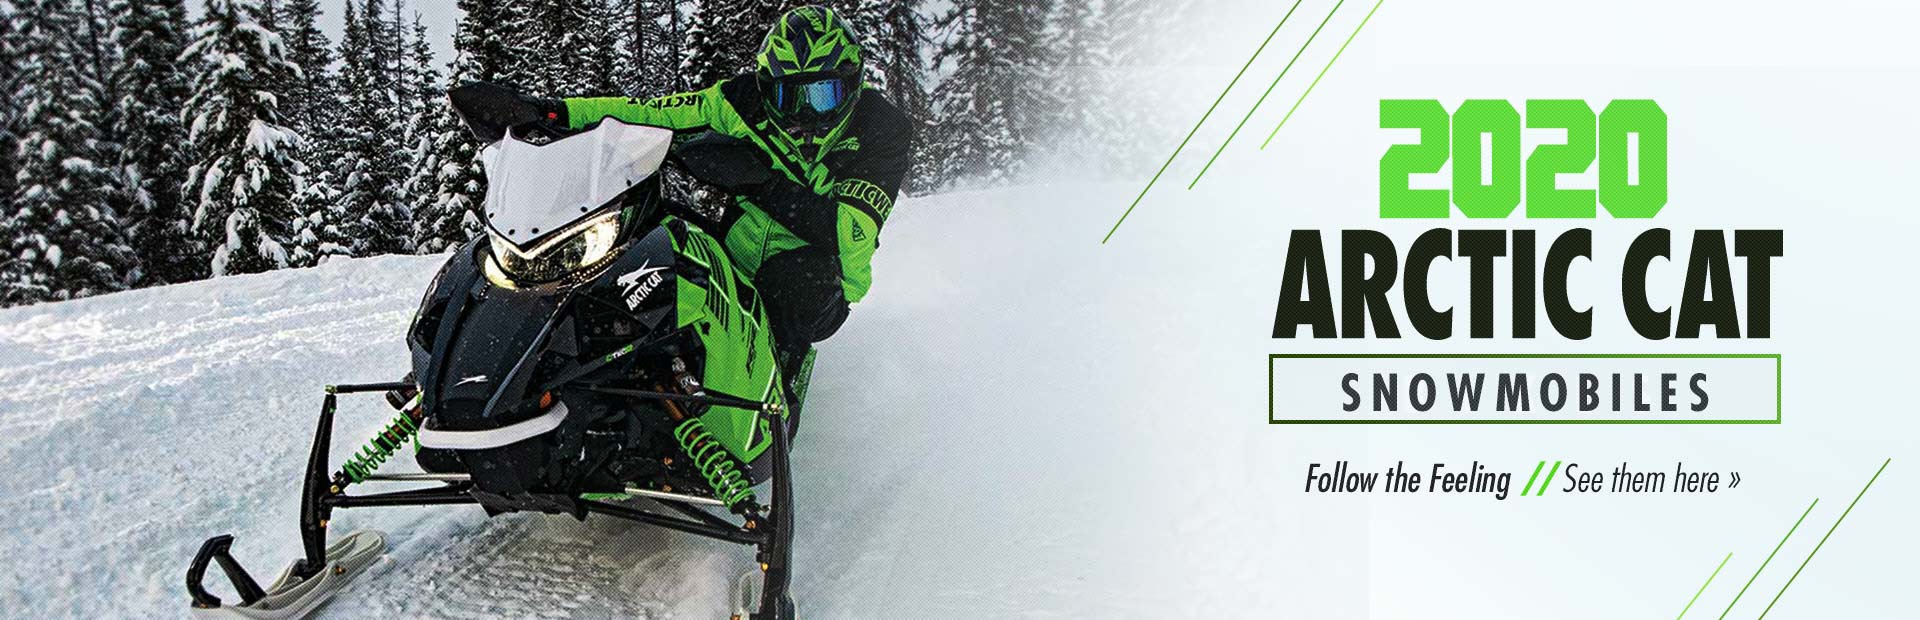 Follow the Feeling. 2020 Arctic Cat Snowmobiles: Click here to view our models.